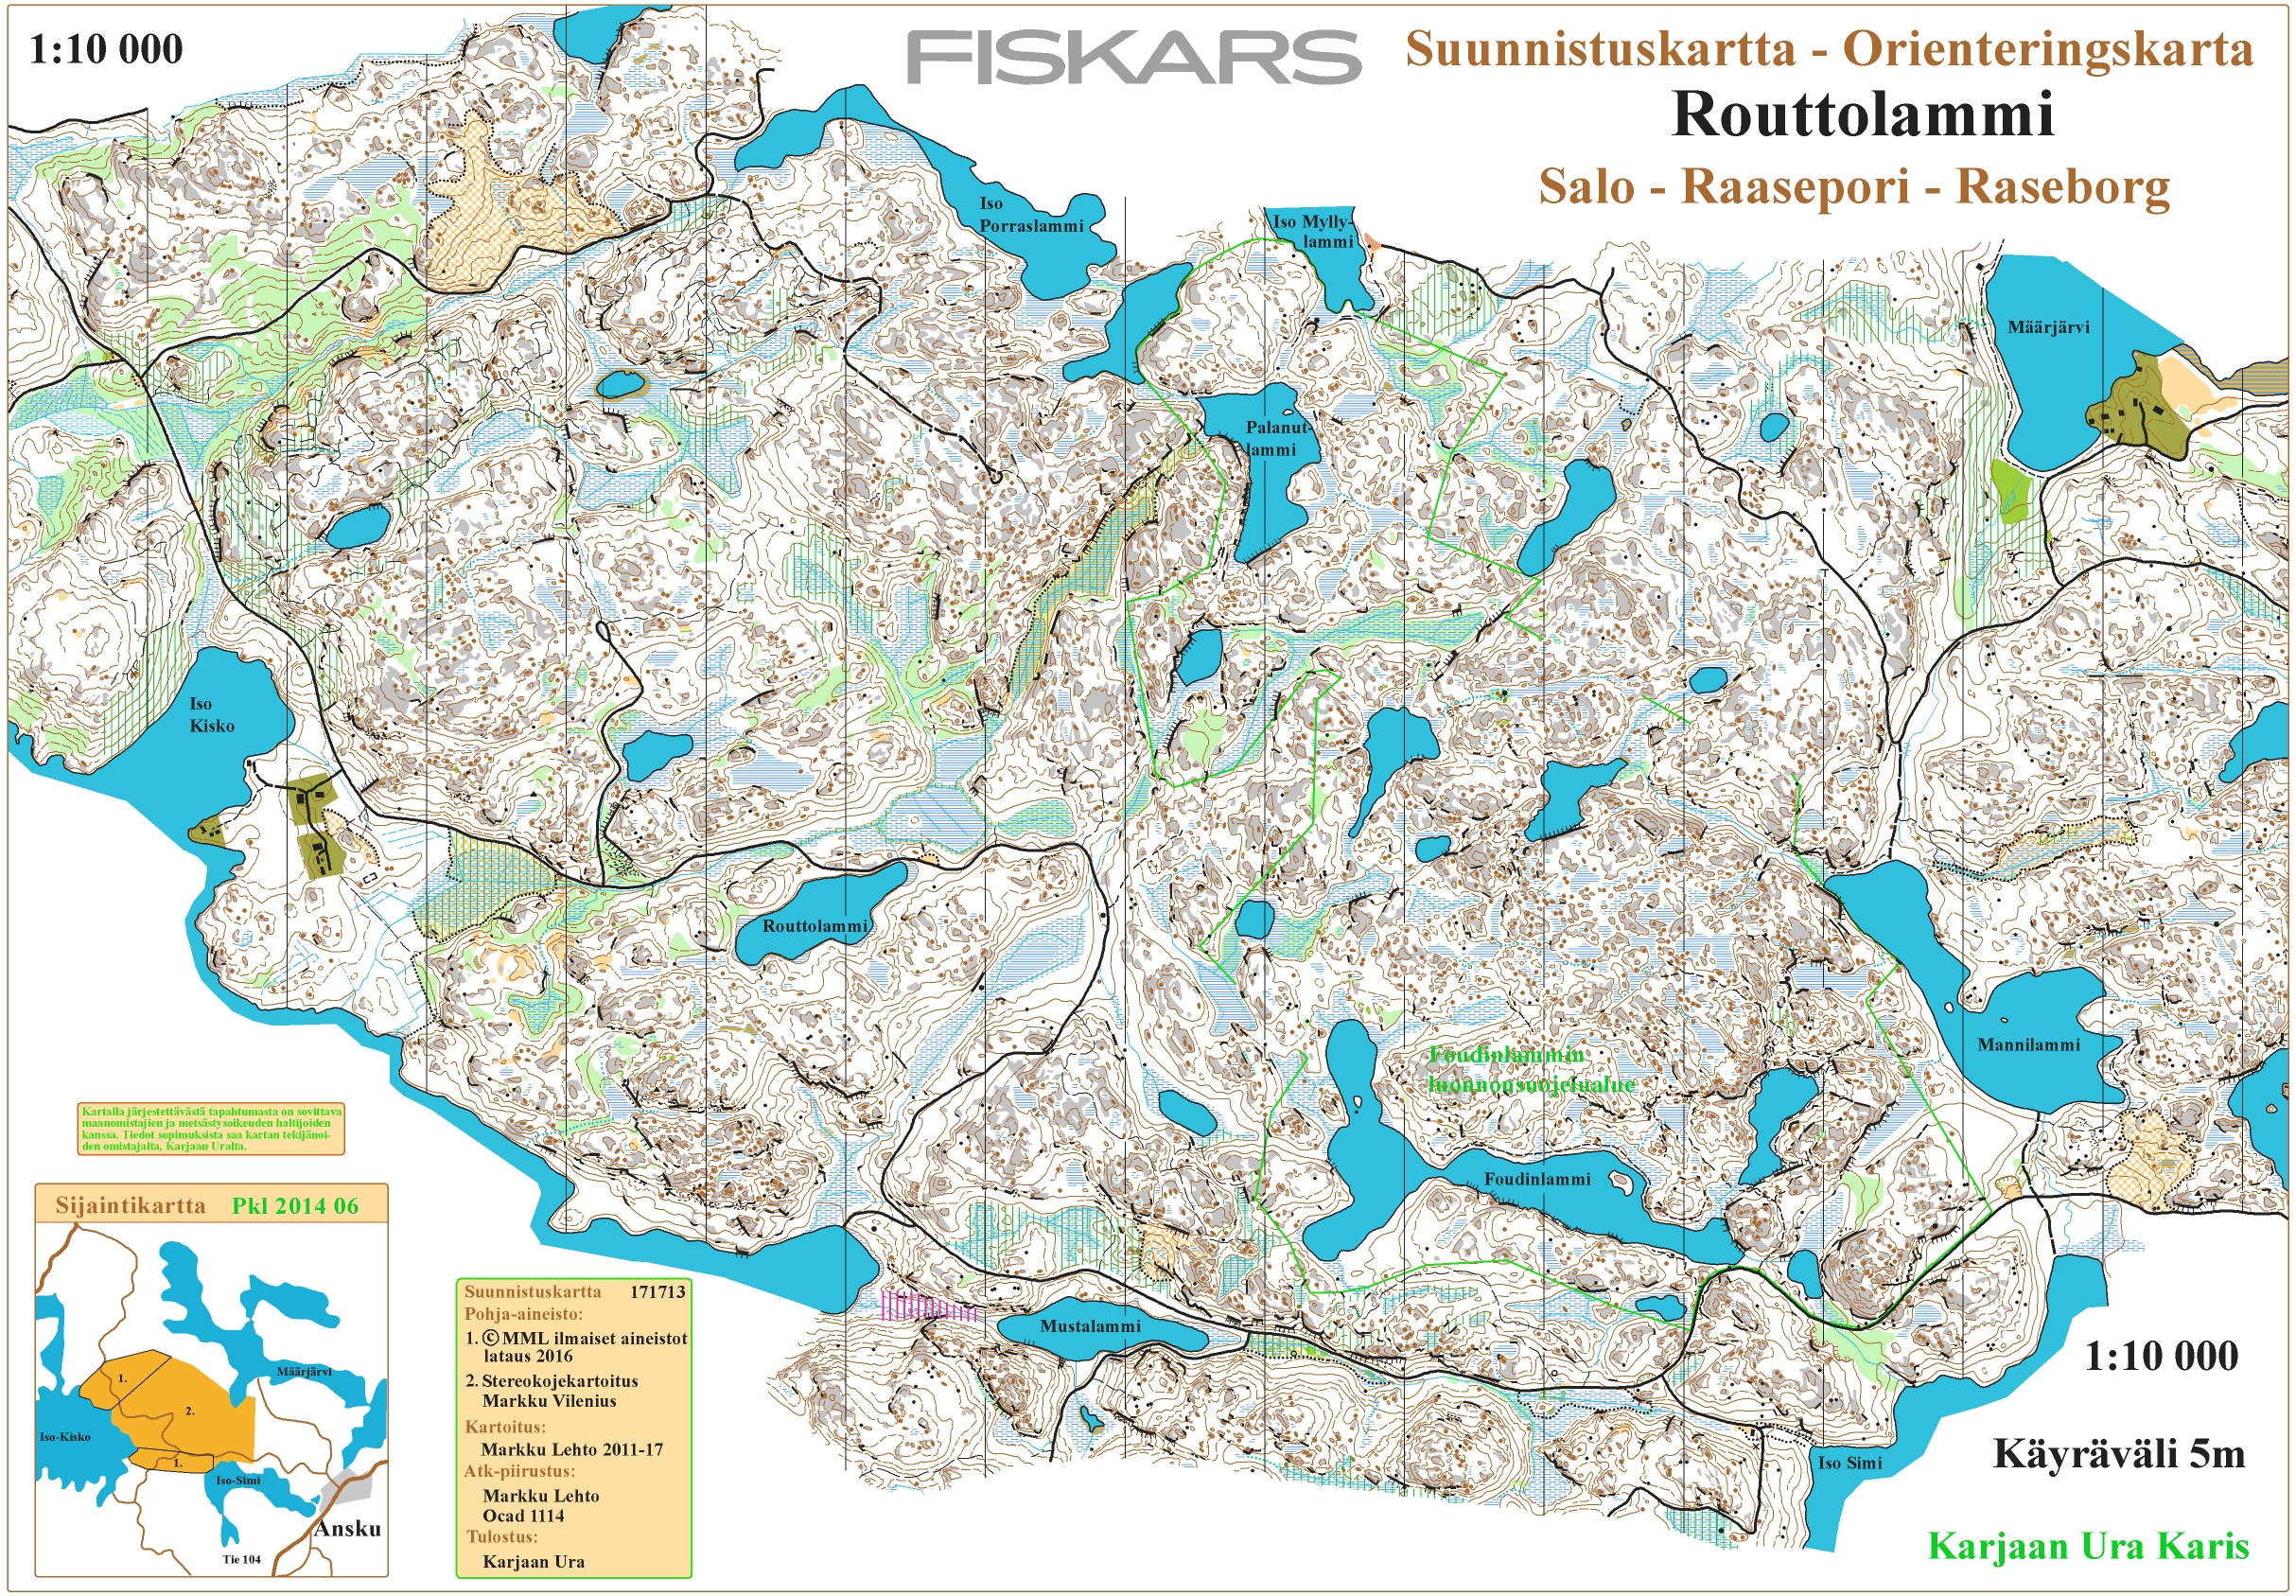 Karjaarastit Antskogissa July 1st 2017 Orienteering Map from